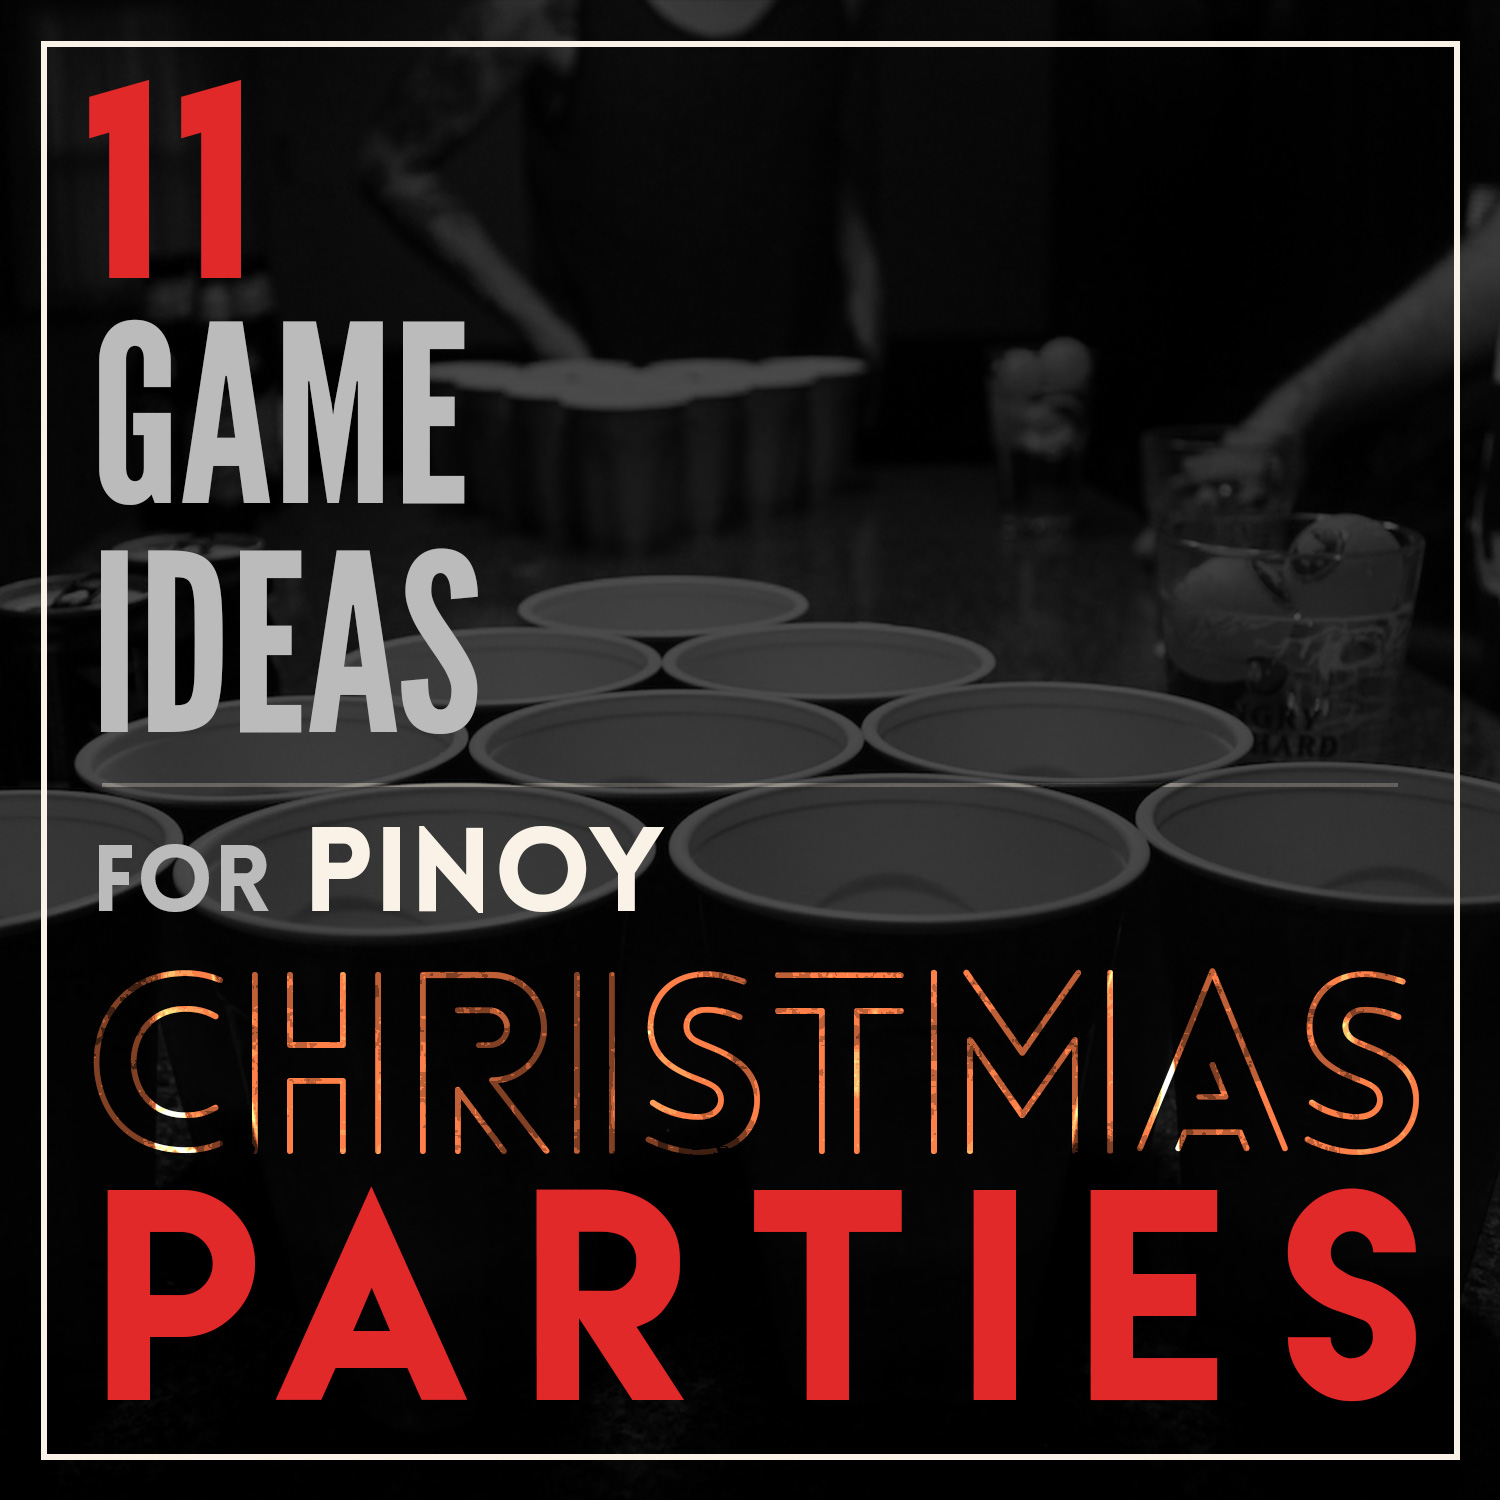 11 game ideas for pinoy christmas parties